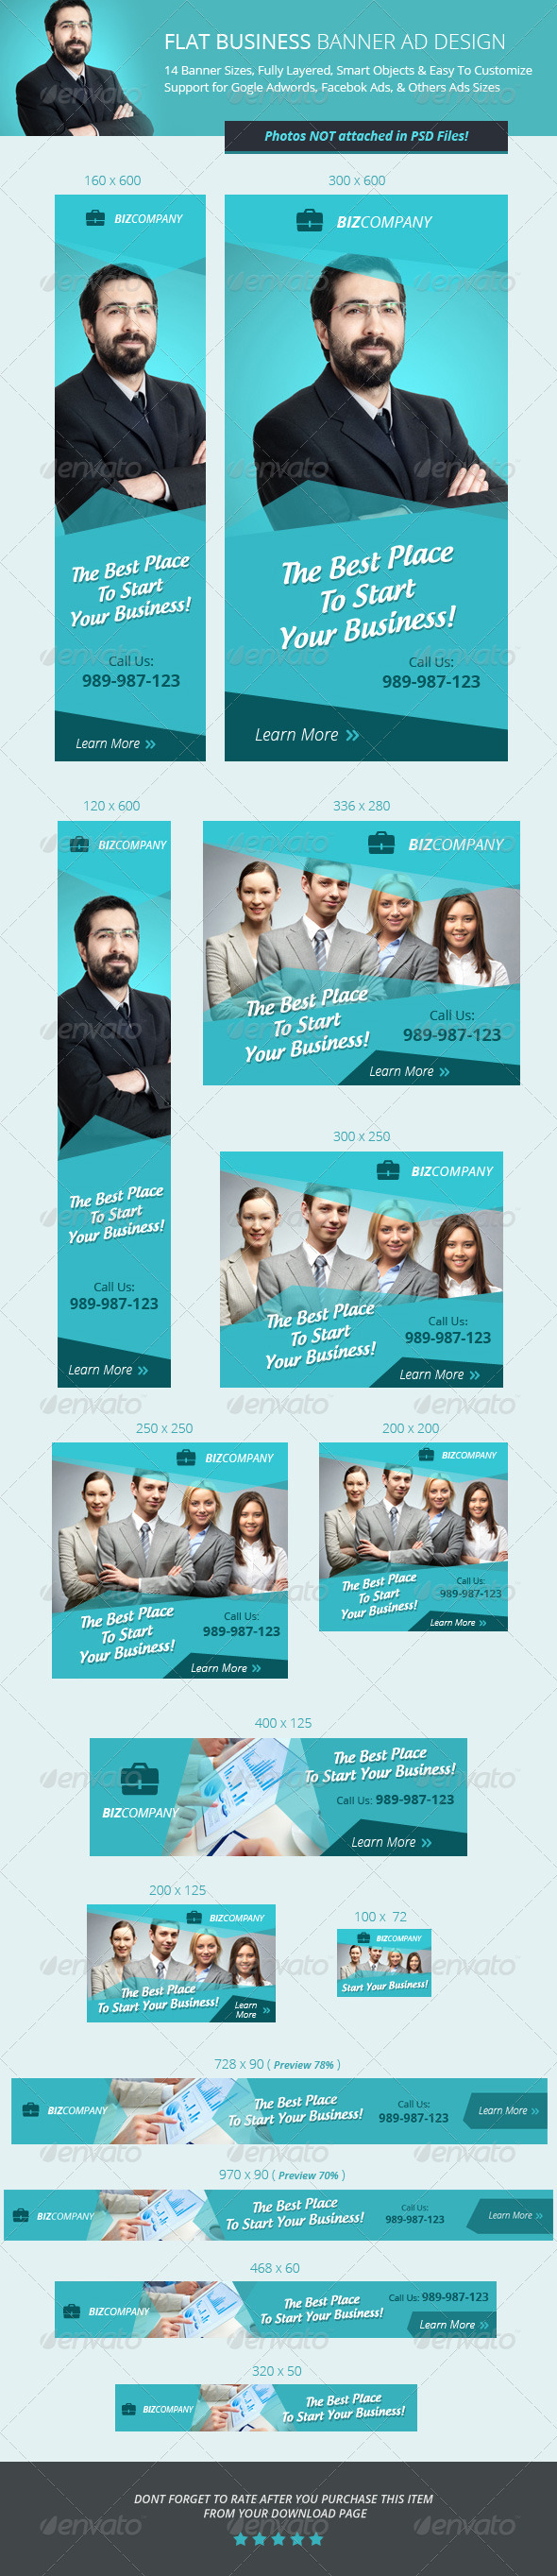 flat business banner ad design flats ad design and mobile web flat business banner ad design template psd buy and